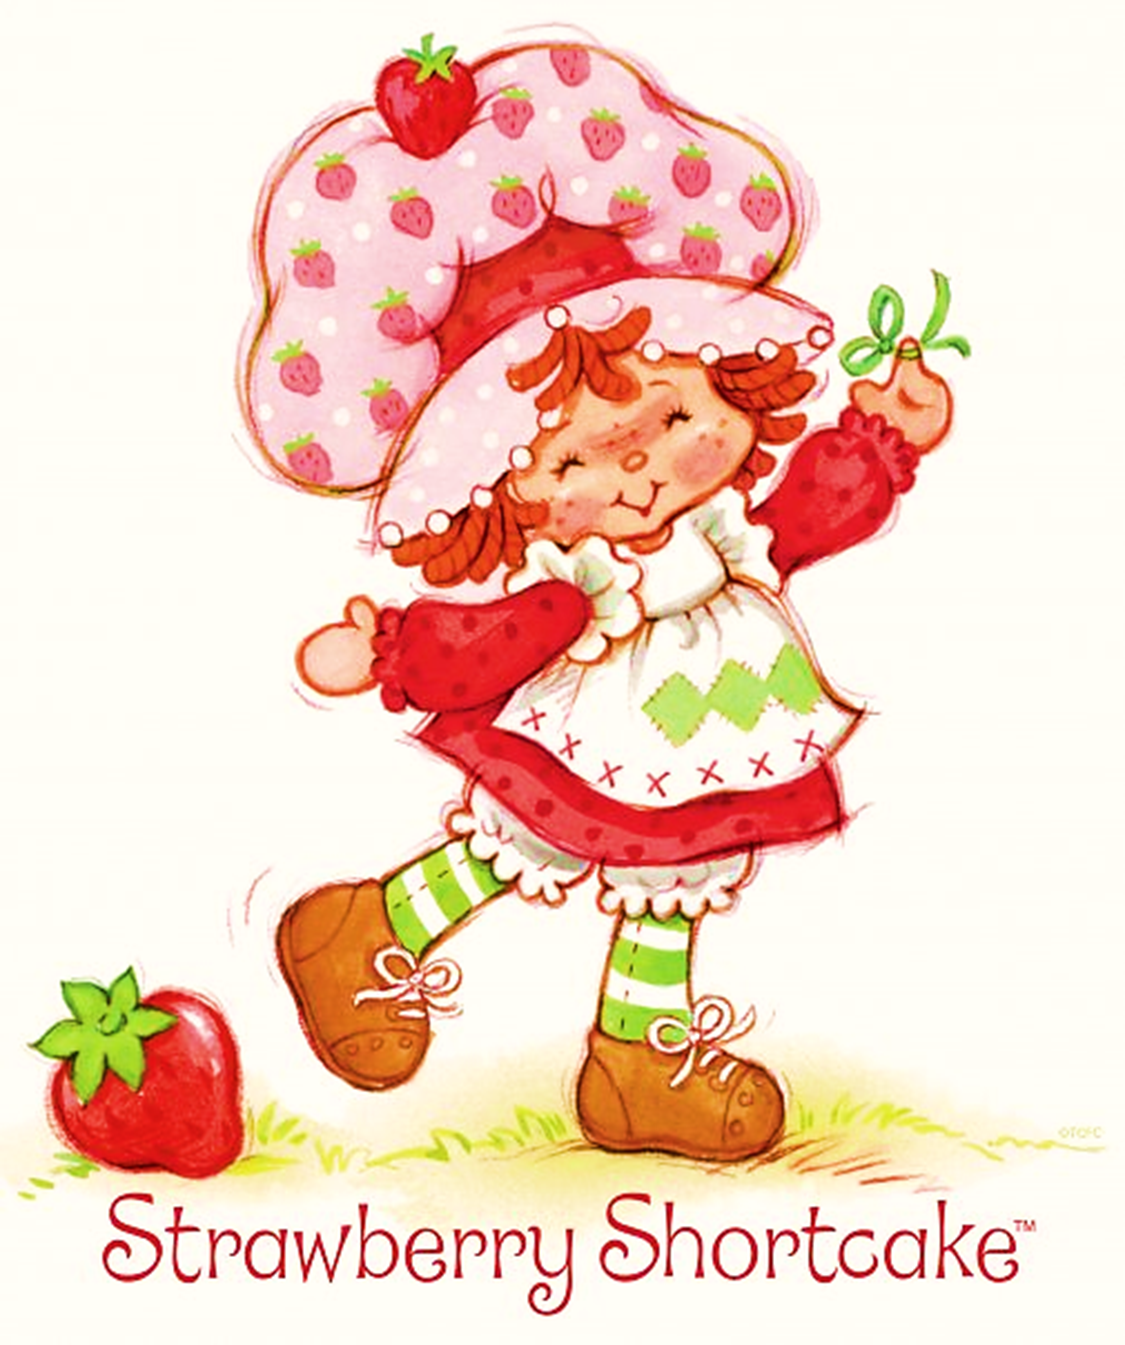 Strawberry Shortcake | álbum frutillitas | Pinterest | Cintas ...